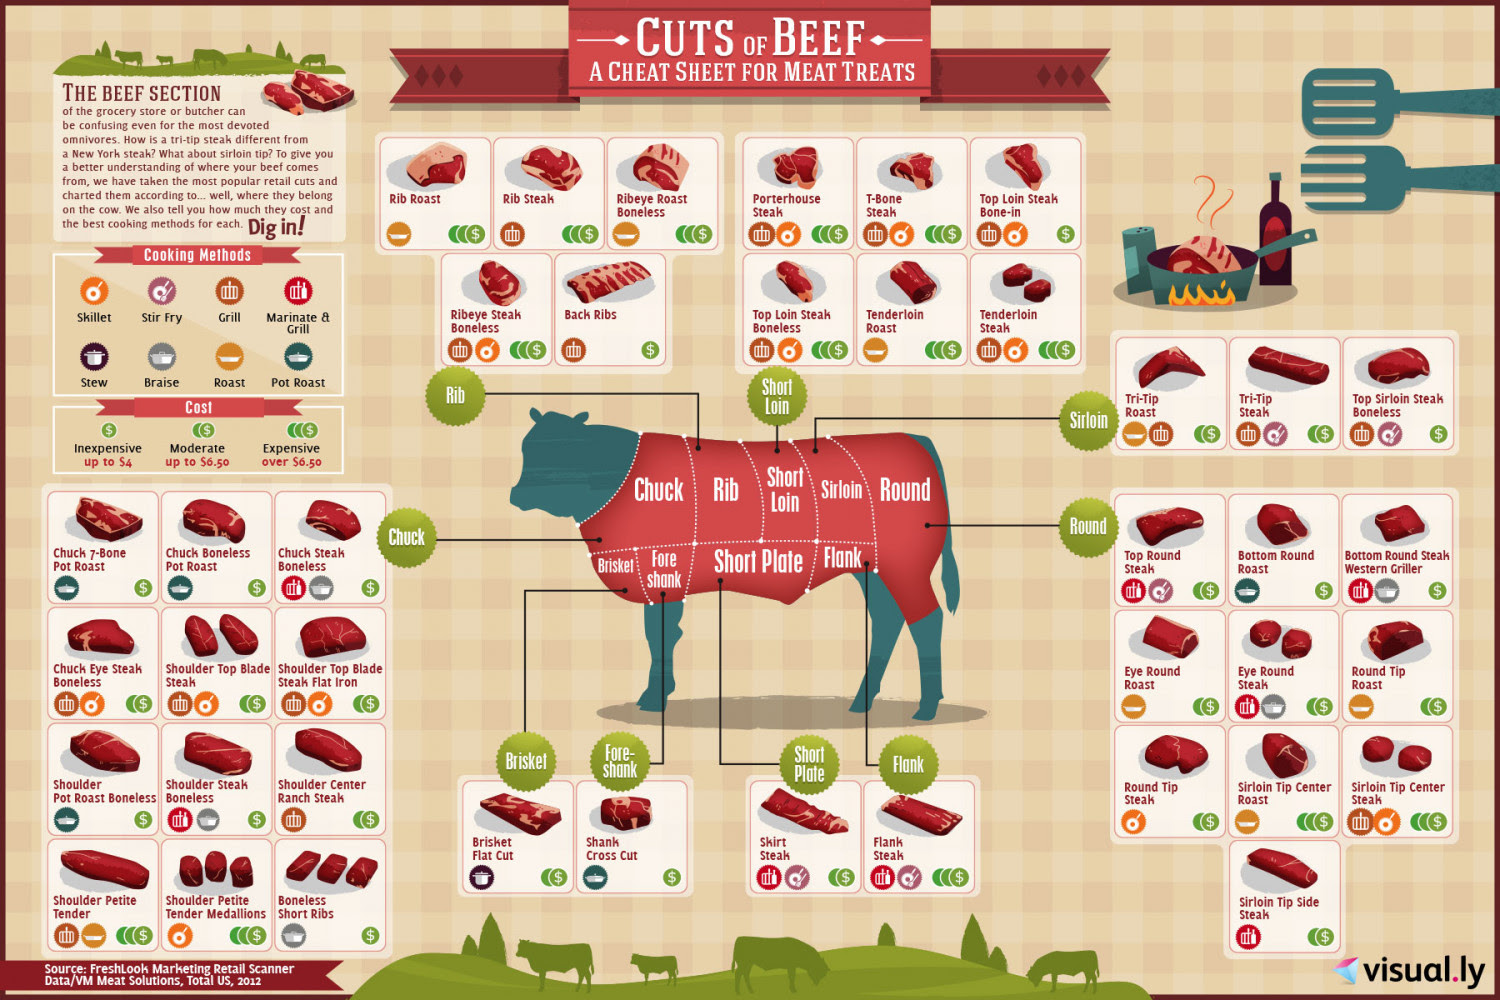 Cuts of Beef | Visual.ly